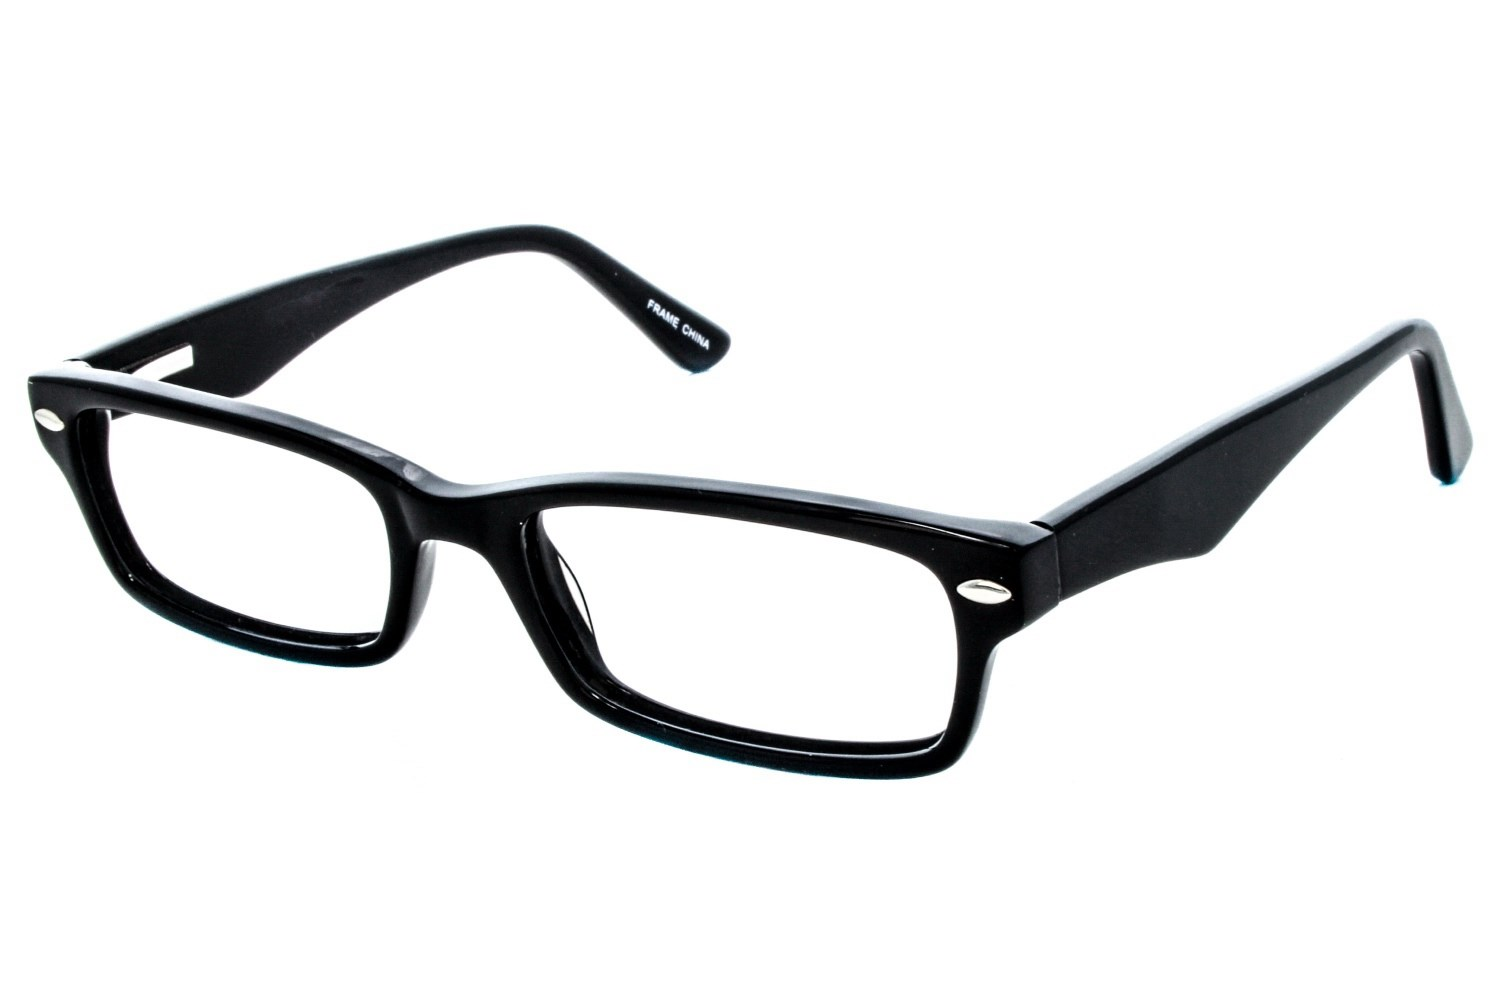 330fc503a768 eyeglasses: Brand Lunettos Eyewear glasses and contact lenses superstore